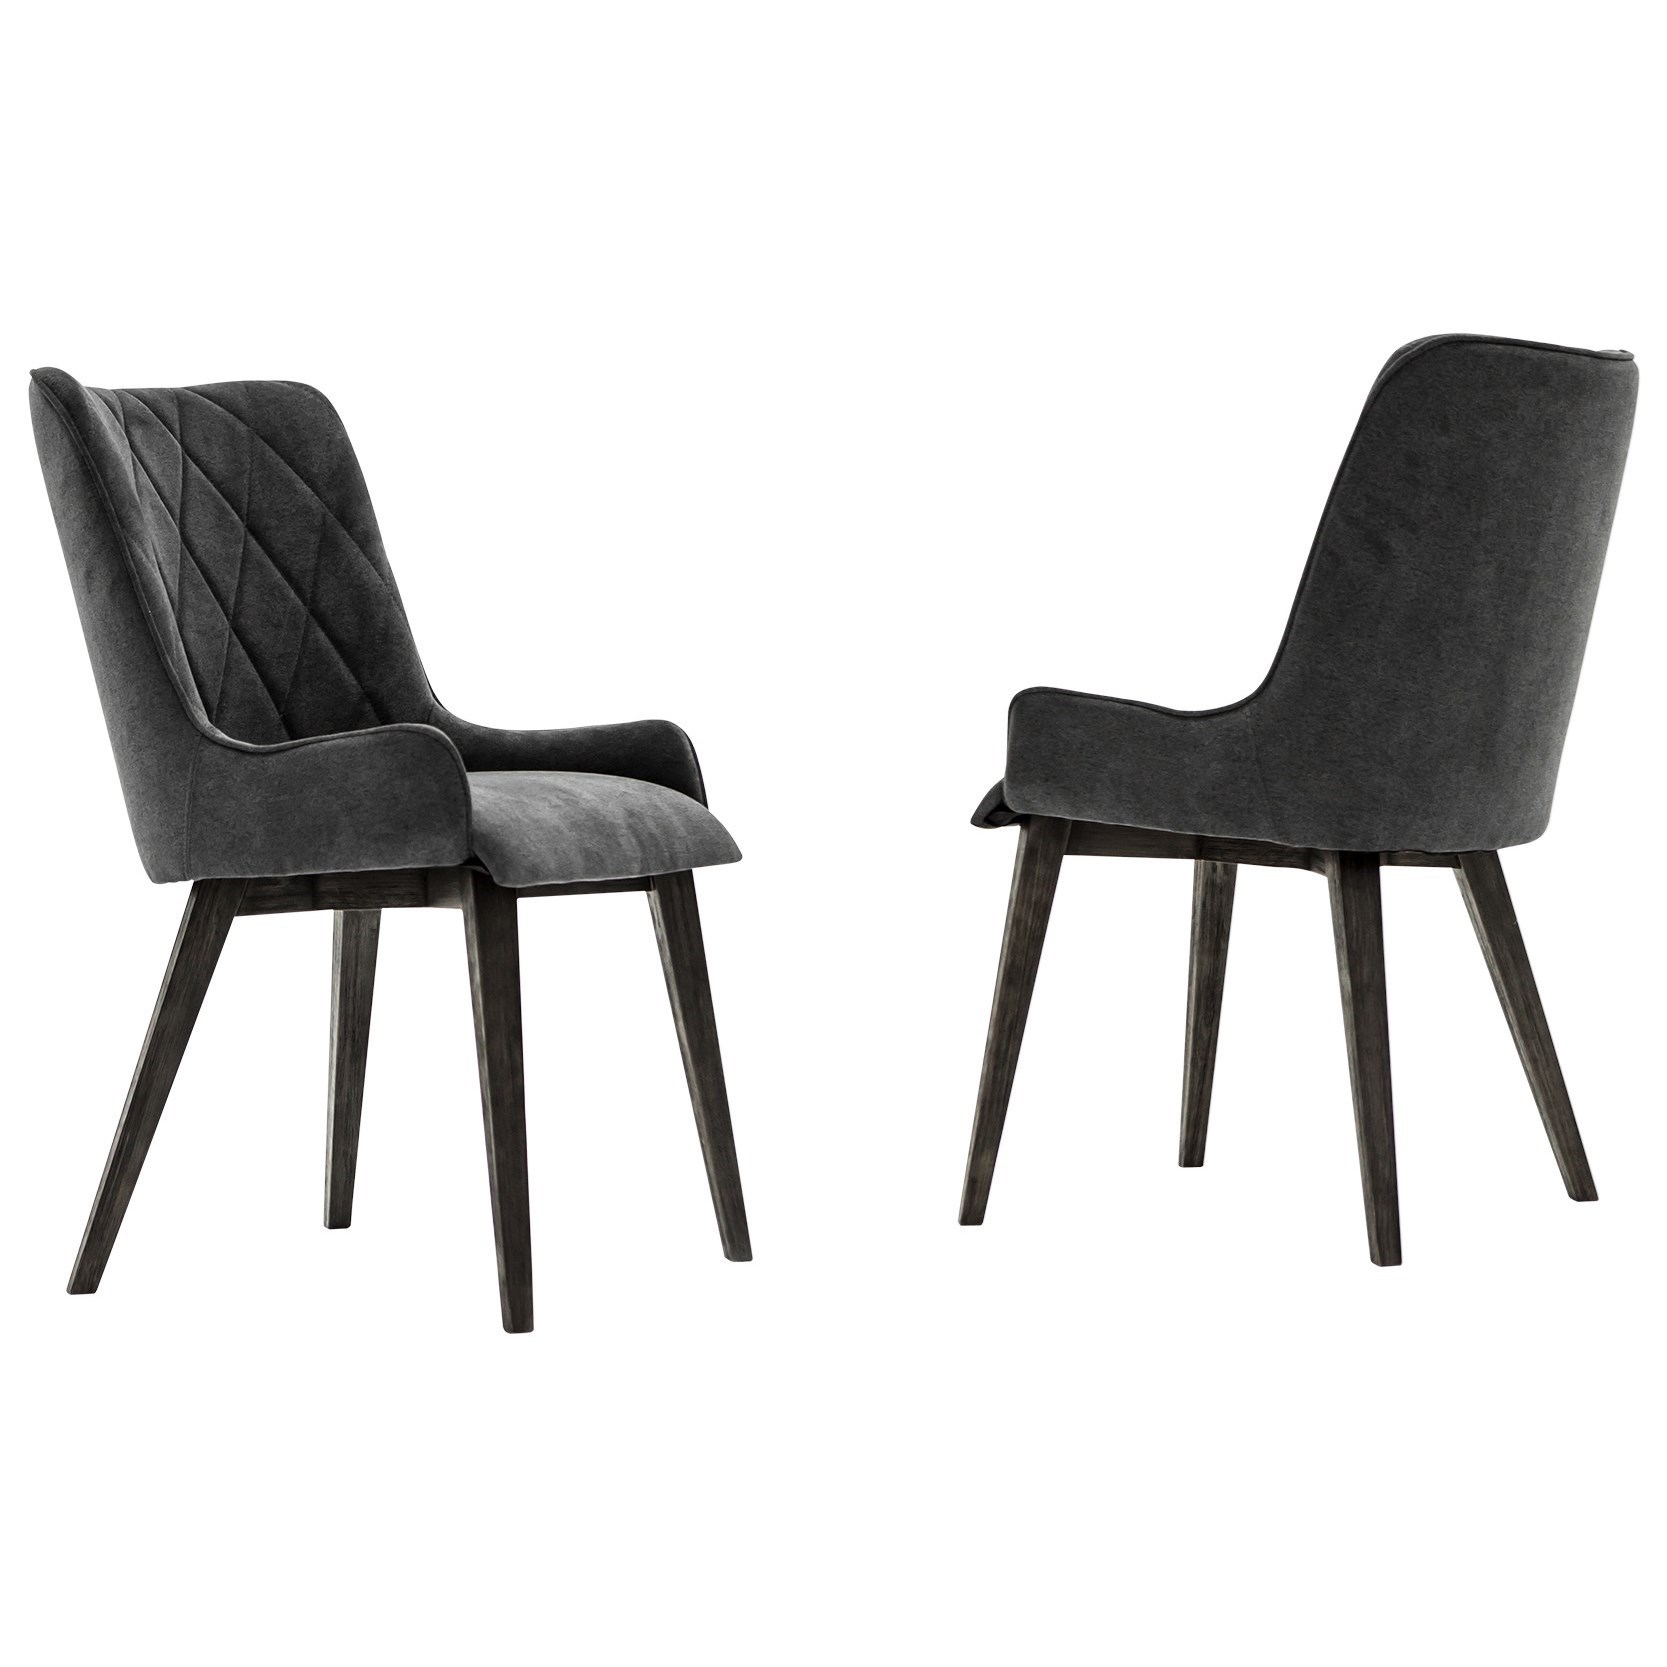 Alana Charcoal Upholstered Dining Chair Set at Sadler's Home Furnishings